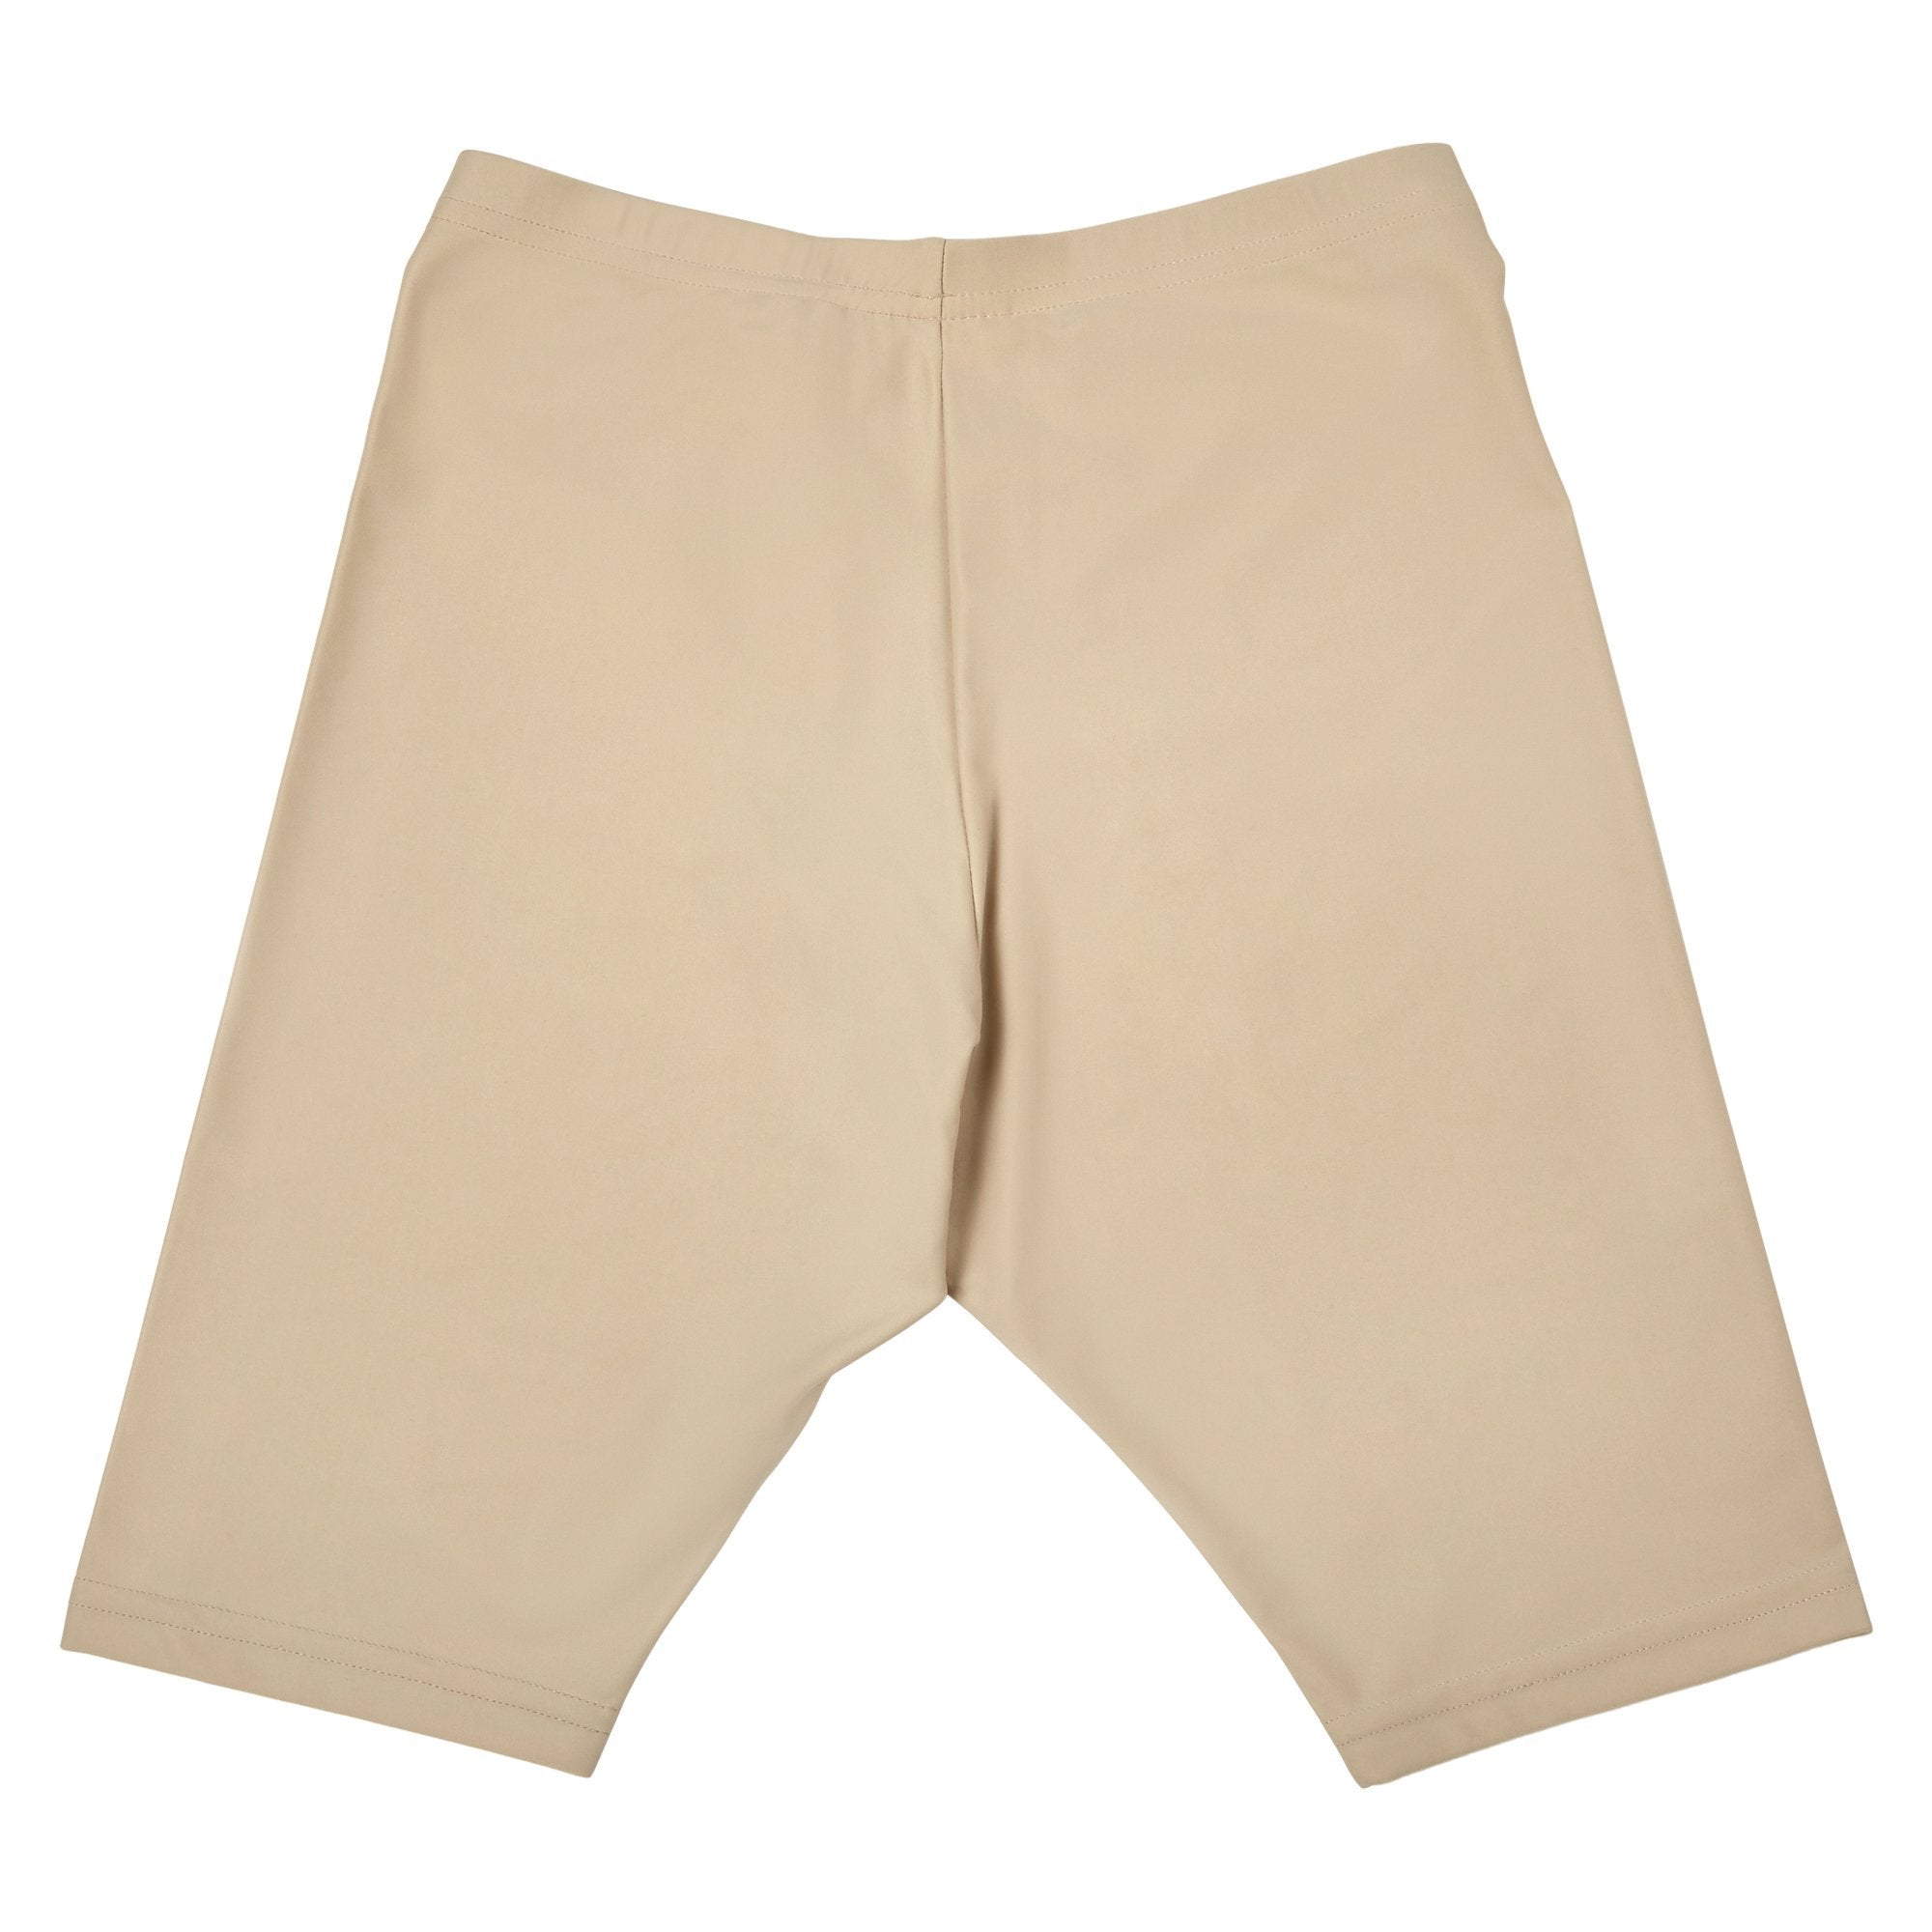 Champion Nylon Bike Shorts - Skintone Apparel Champion